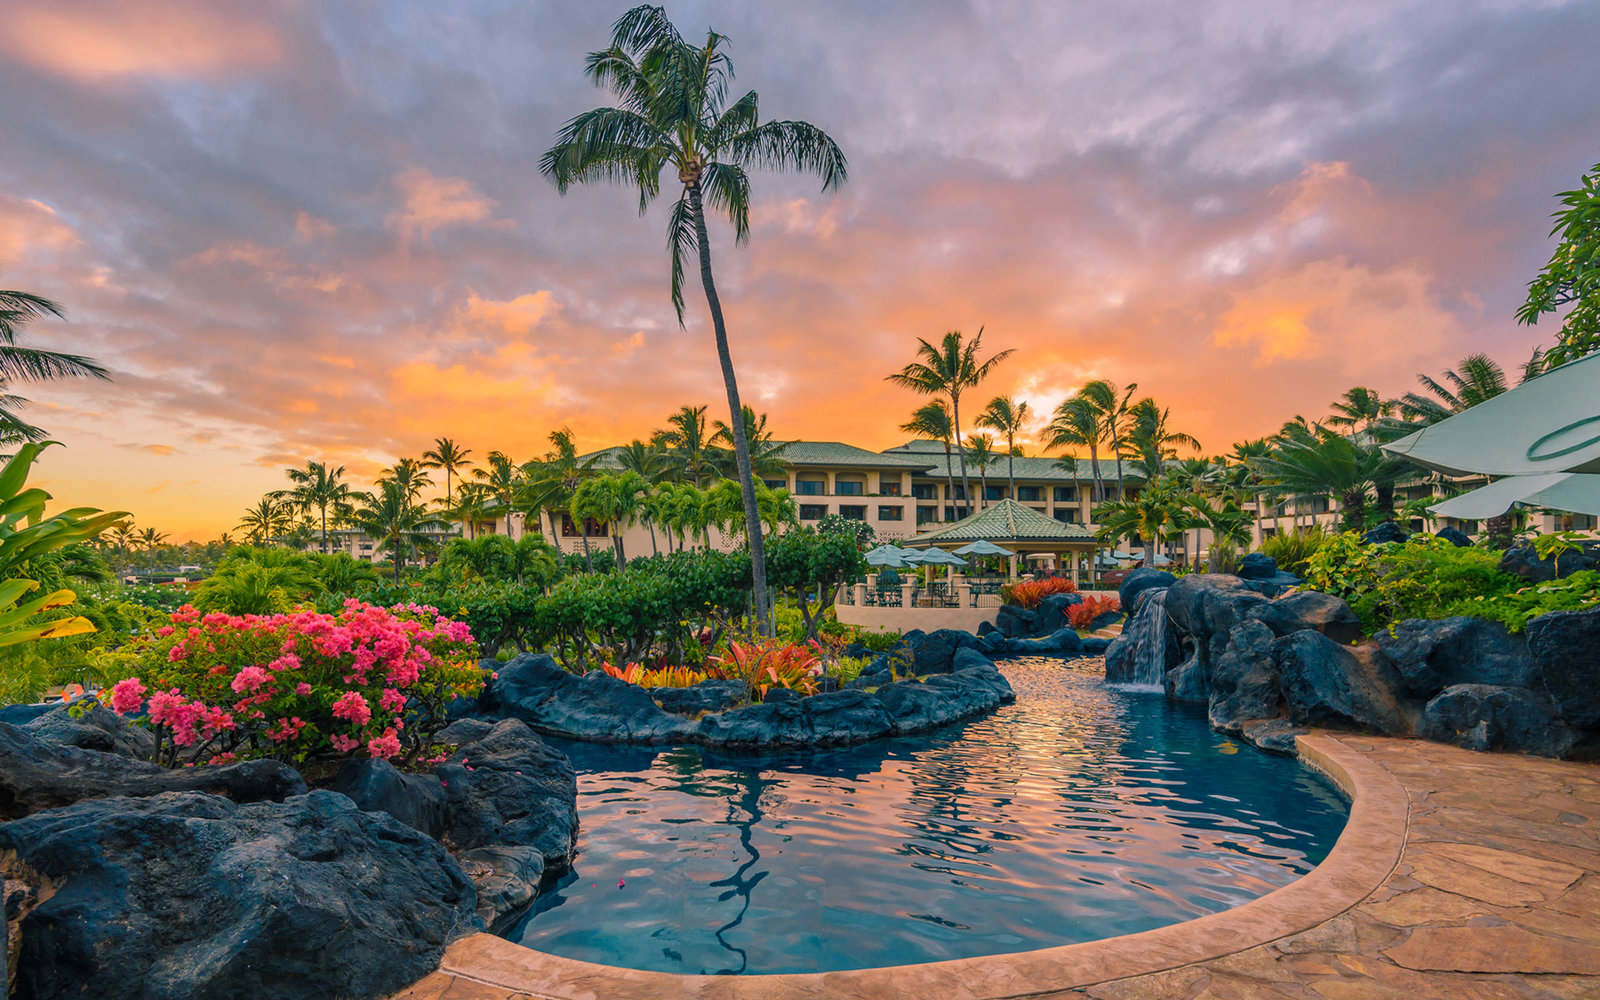 No. 11: Grand Hyatt Kauai Resort & Spa